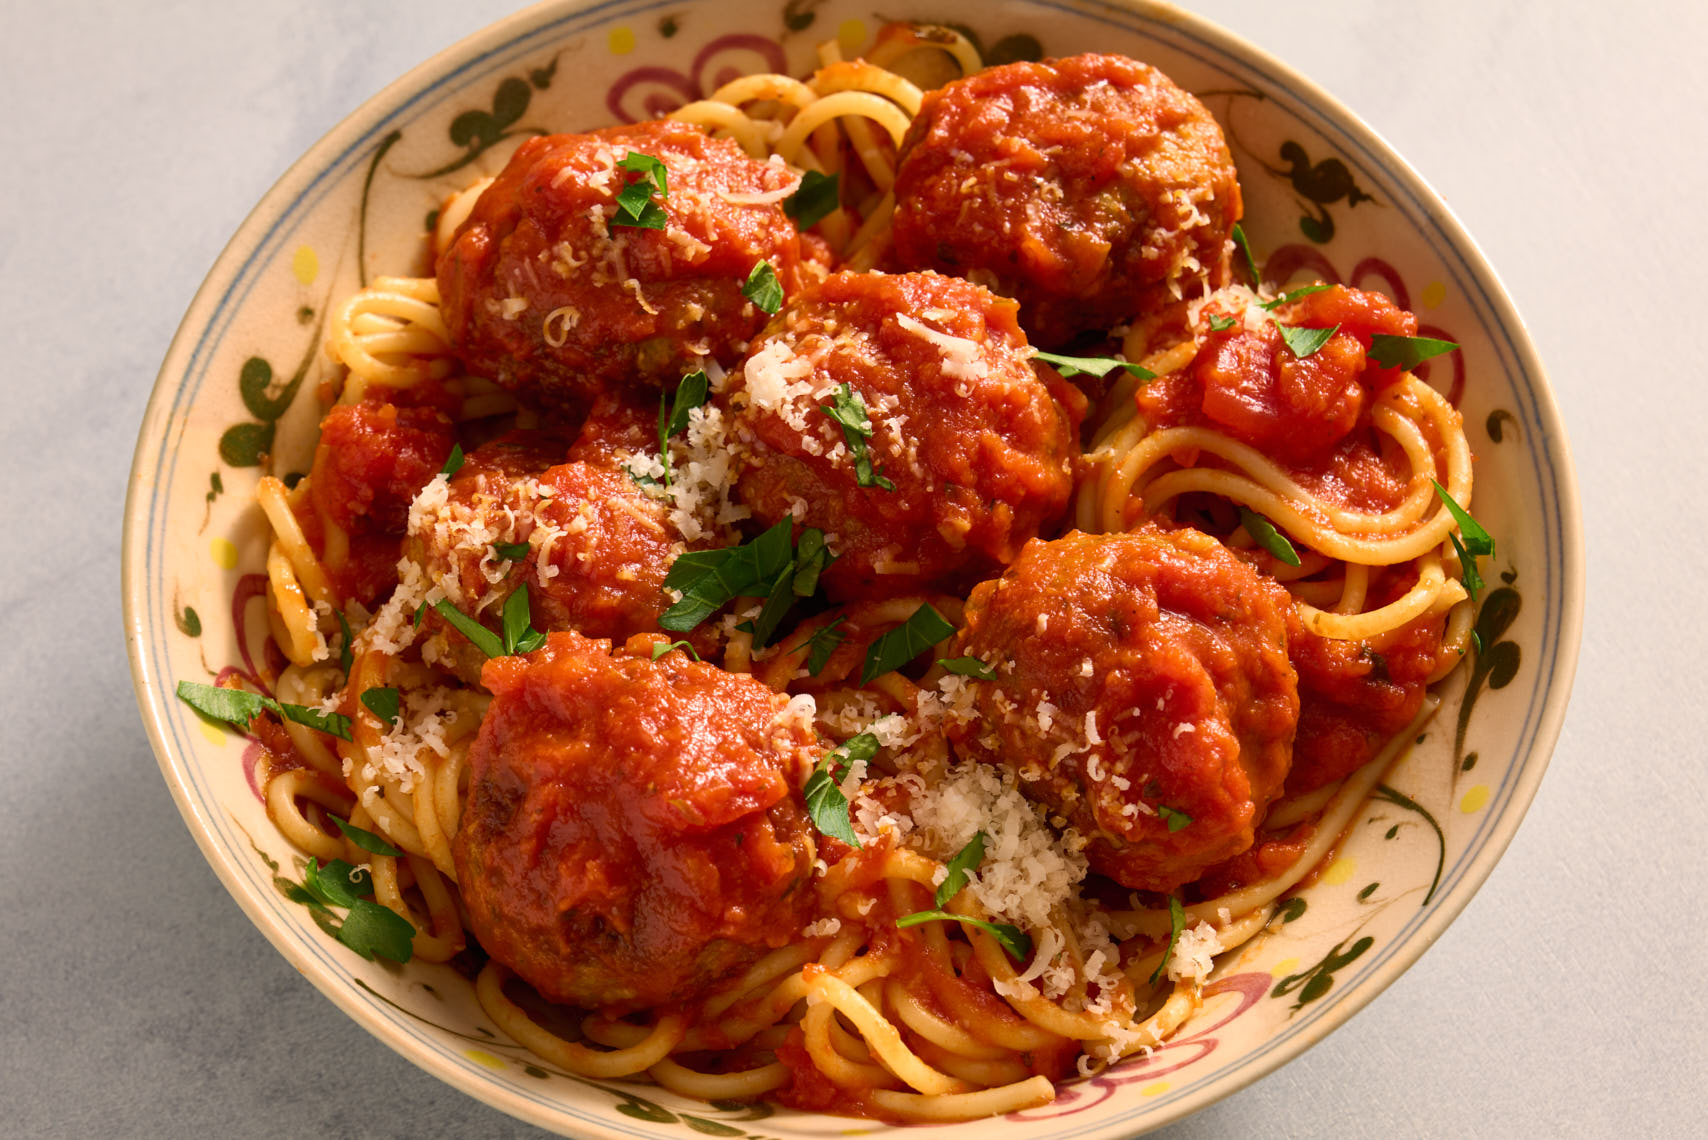 Spaghetti & Meatballs - Restaurant Food Photographer PA, NJ, NYC